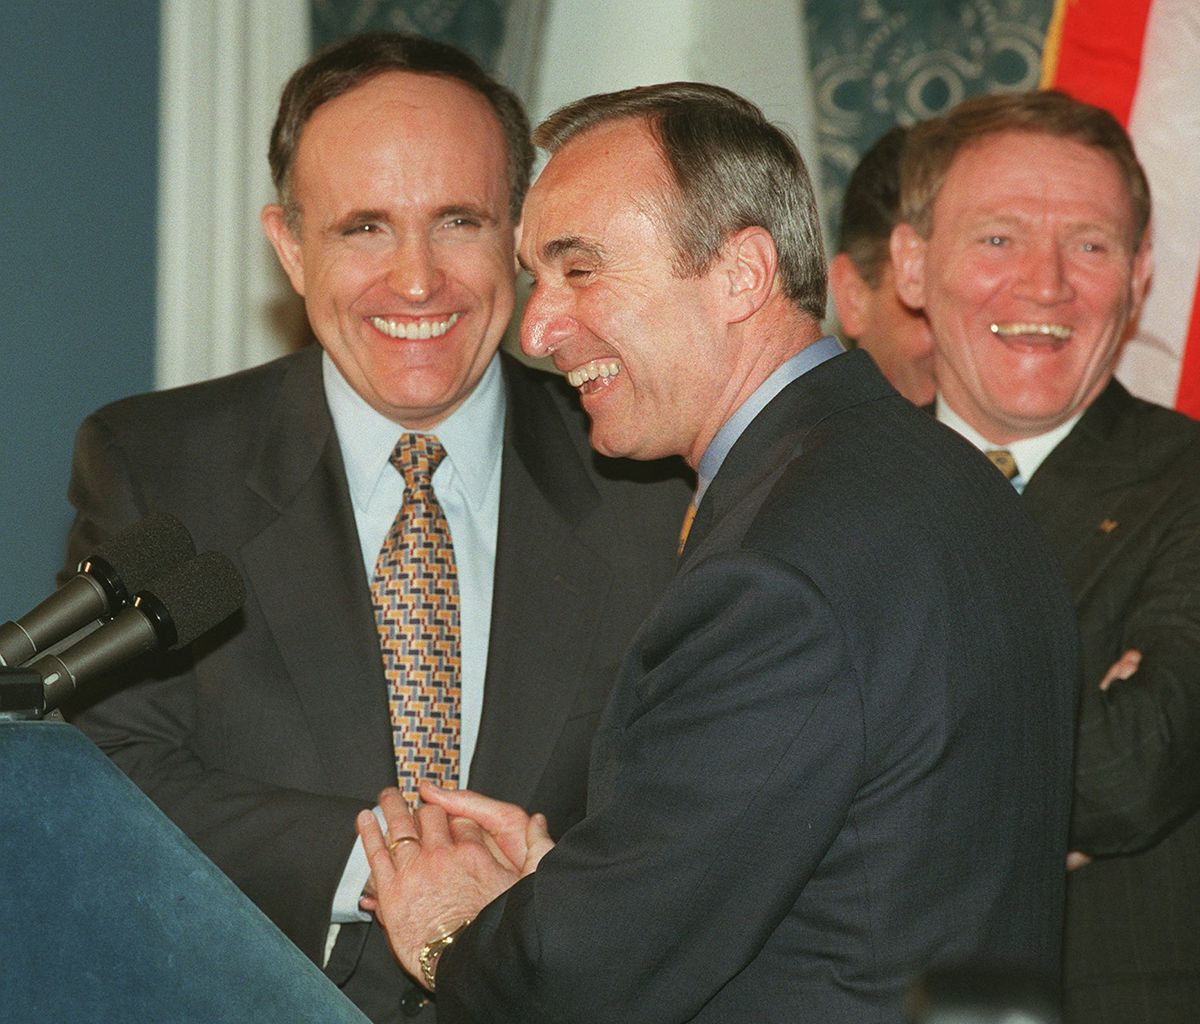 "<div class=""meta image-caption""><div class=""origin-logo origin-image ap""><span>AP</span></div><span class=""caption-text"">Police Commissioner William Bratton, center, shares a laugh with New York Mayor Rudolph Giuliani, left, during a news conference Tuesday, March 26, 1996 at City Hall in New York. (AP Photo/Richard Drew)</span></div>"